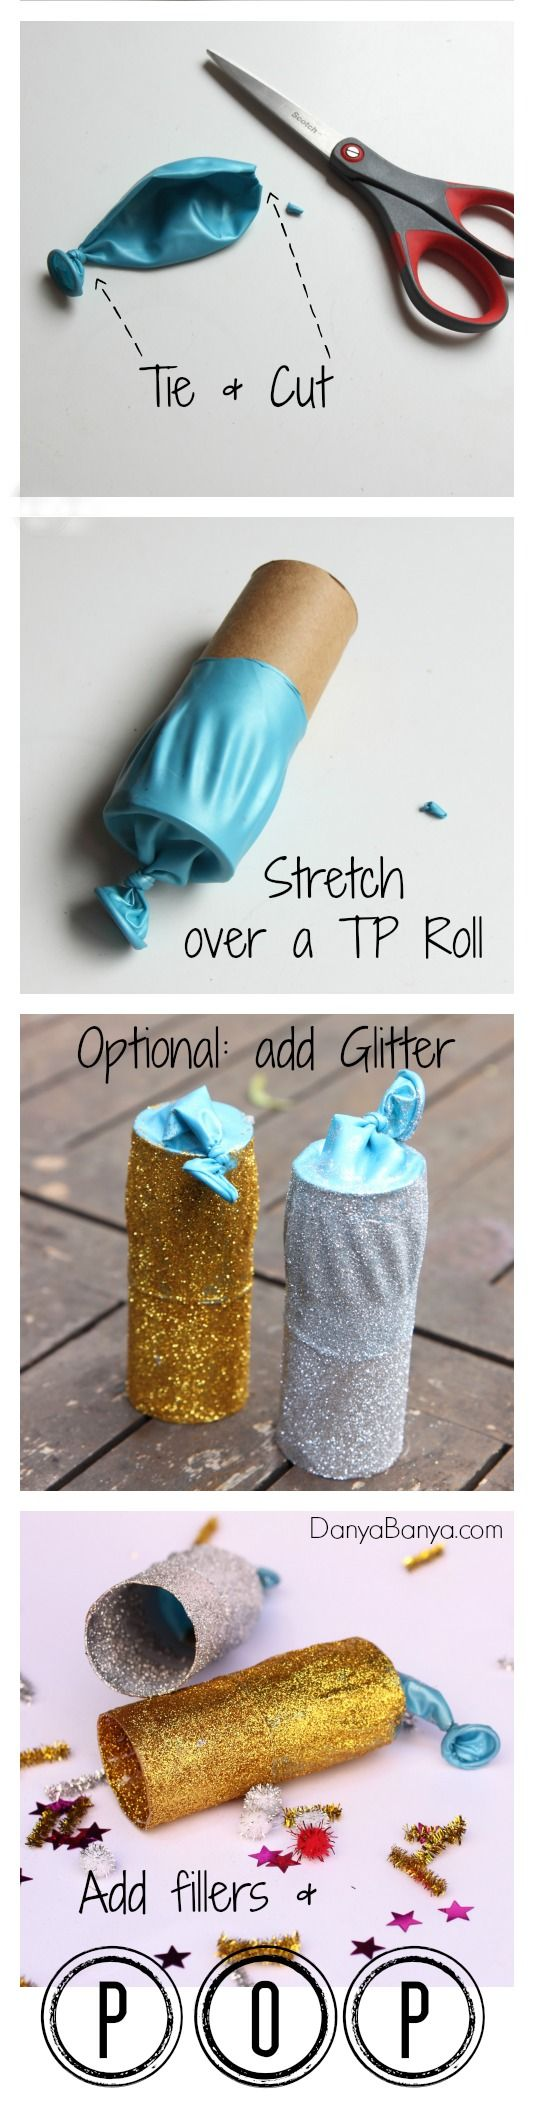 Easy DIY glitter party poppers - fun for kids parties or New Years Eve. ~ Danya Banya